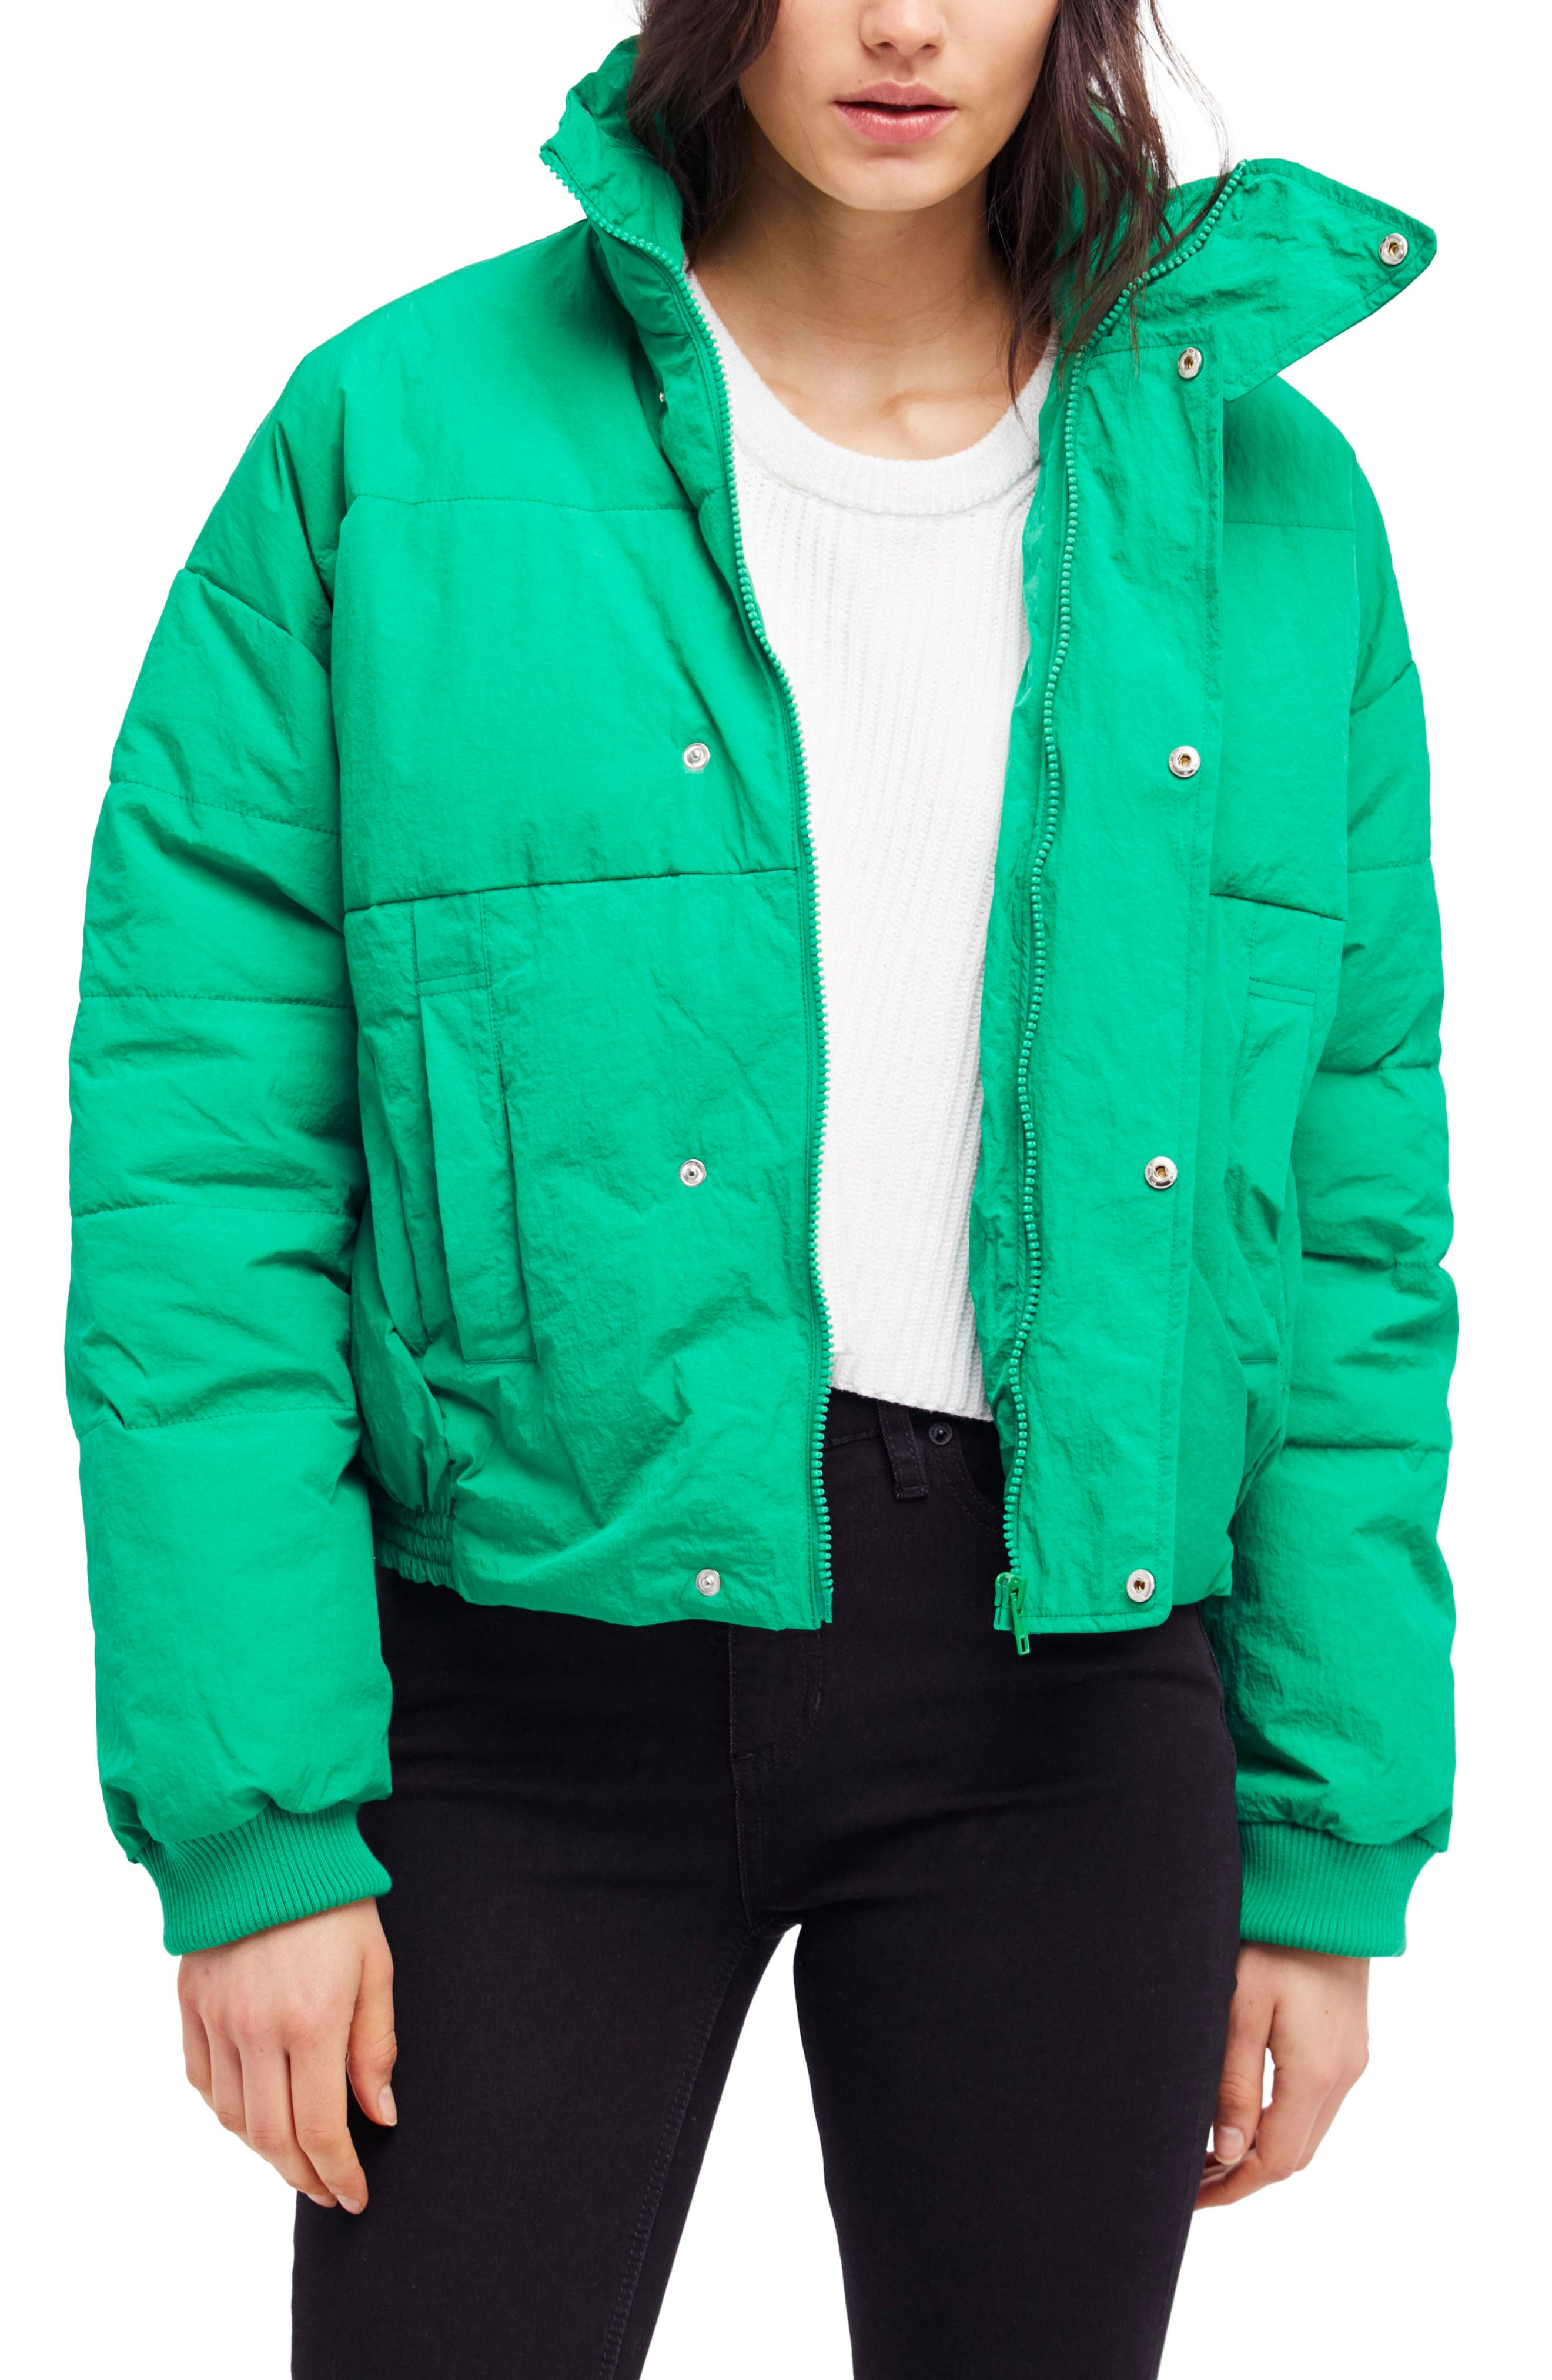 Cold Rush Puffer Jacket,                         Main,                         color, Green